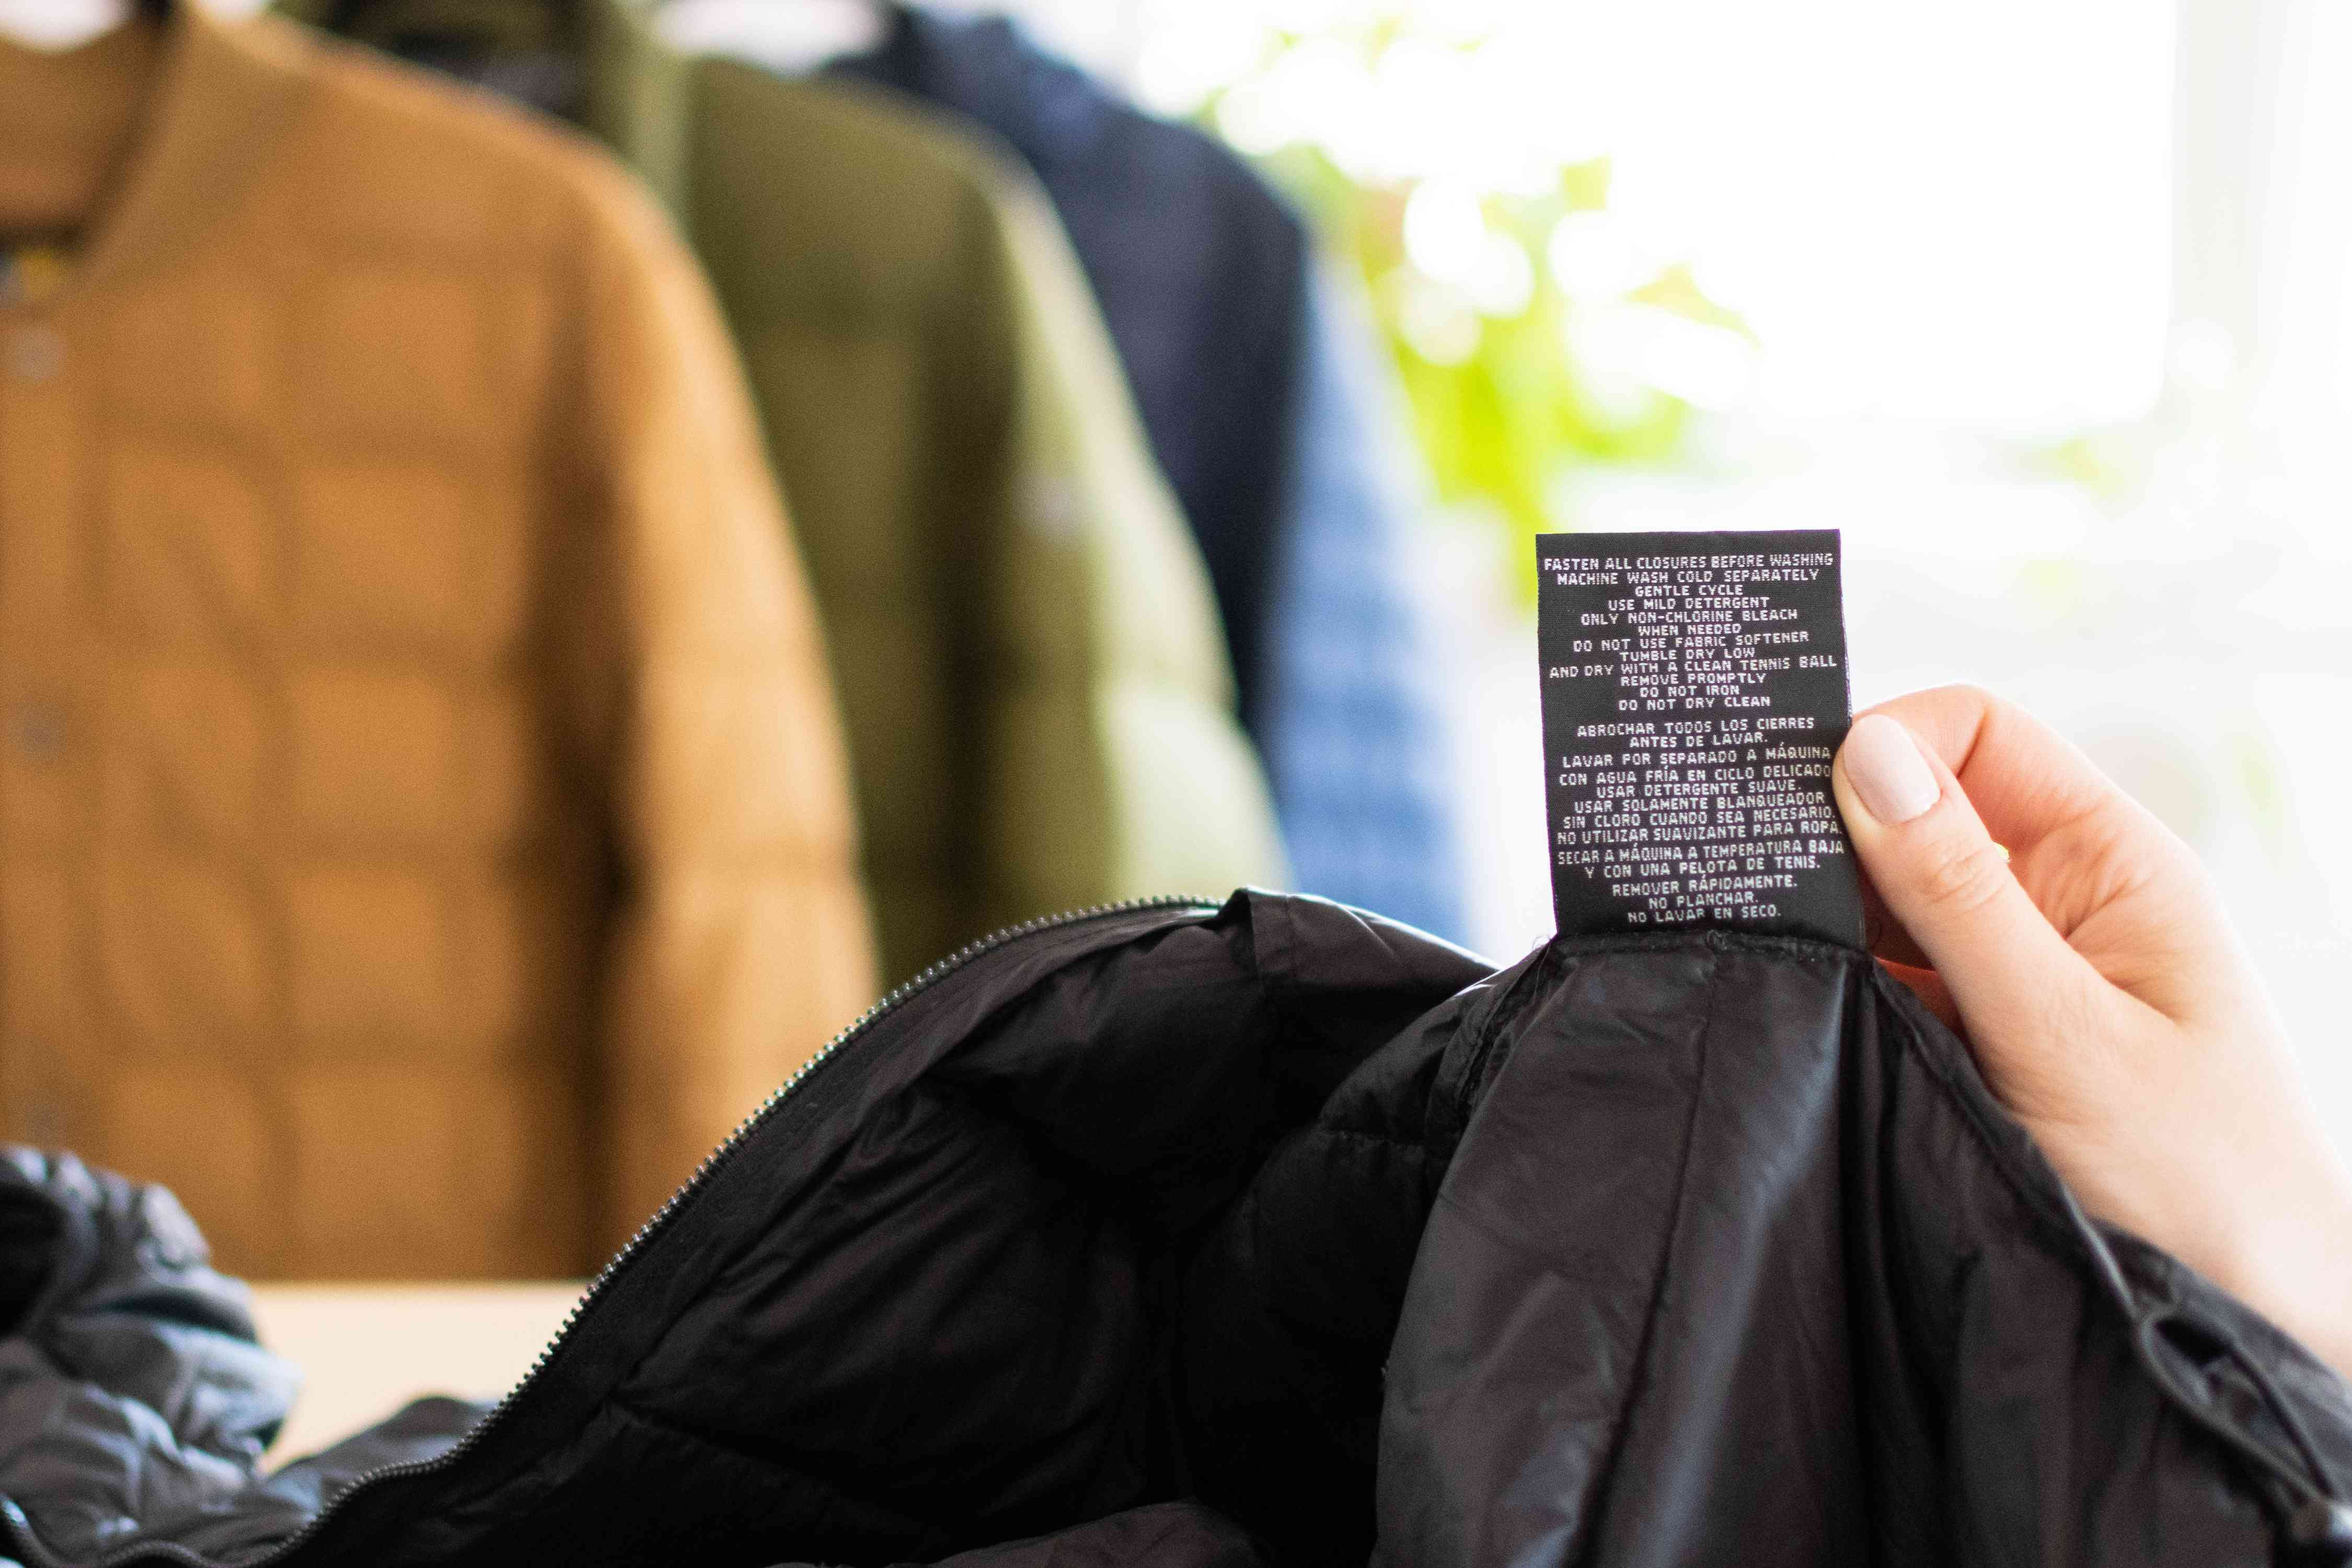 Care labels being read for black down coat